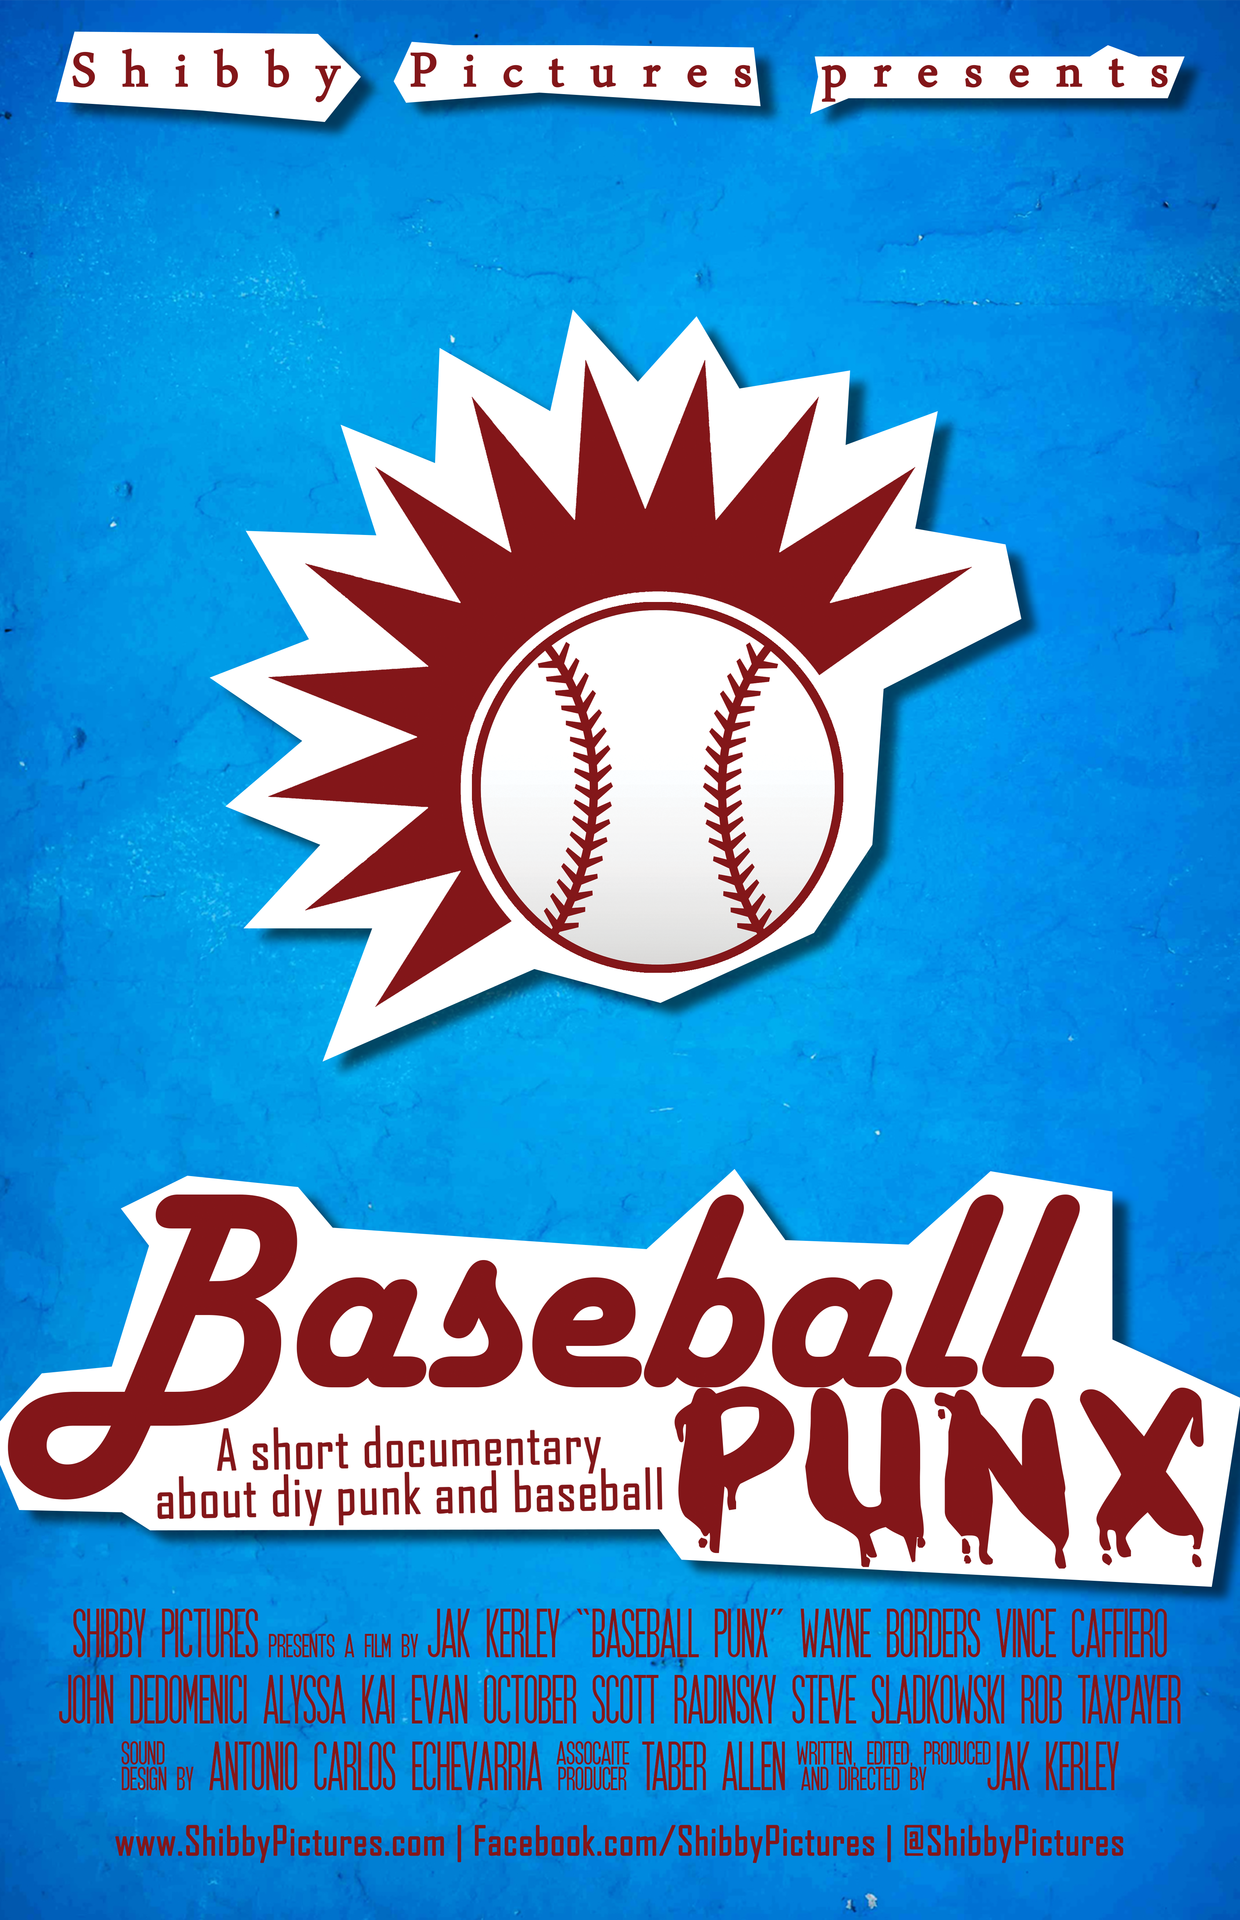 1 year ago I released Baseball Punx. It took two years to make, from writing to completion. A lot has changed since it came out, and I feel differently about a lot of things said in it. But I'm still very proud of myself for being able to successfully explain some of the things I feel about baseball in this context, because my love for baseball is a weird and complex thing.  Oh also, ESPN wrote an article about it which was pretty chill, check that out…    http://www.espn.com/blog/music/post/_/id/9026/first-look-baseball-punx-documentary